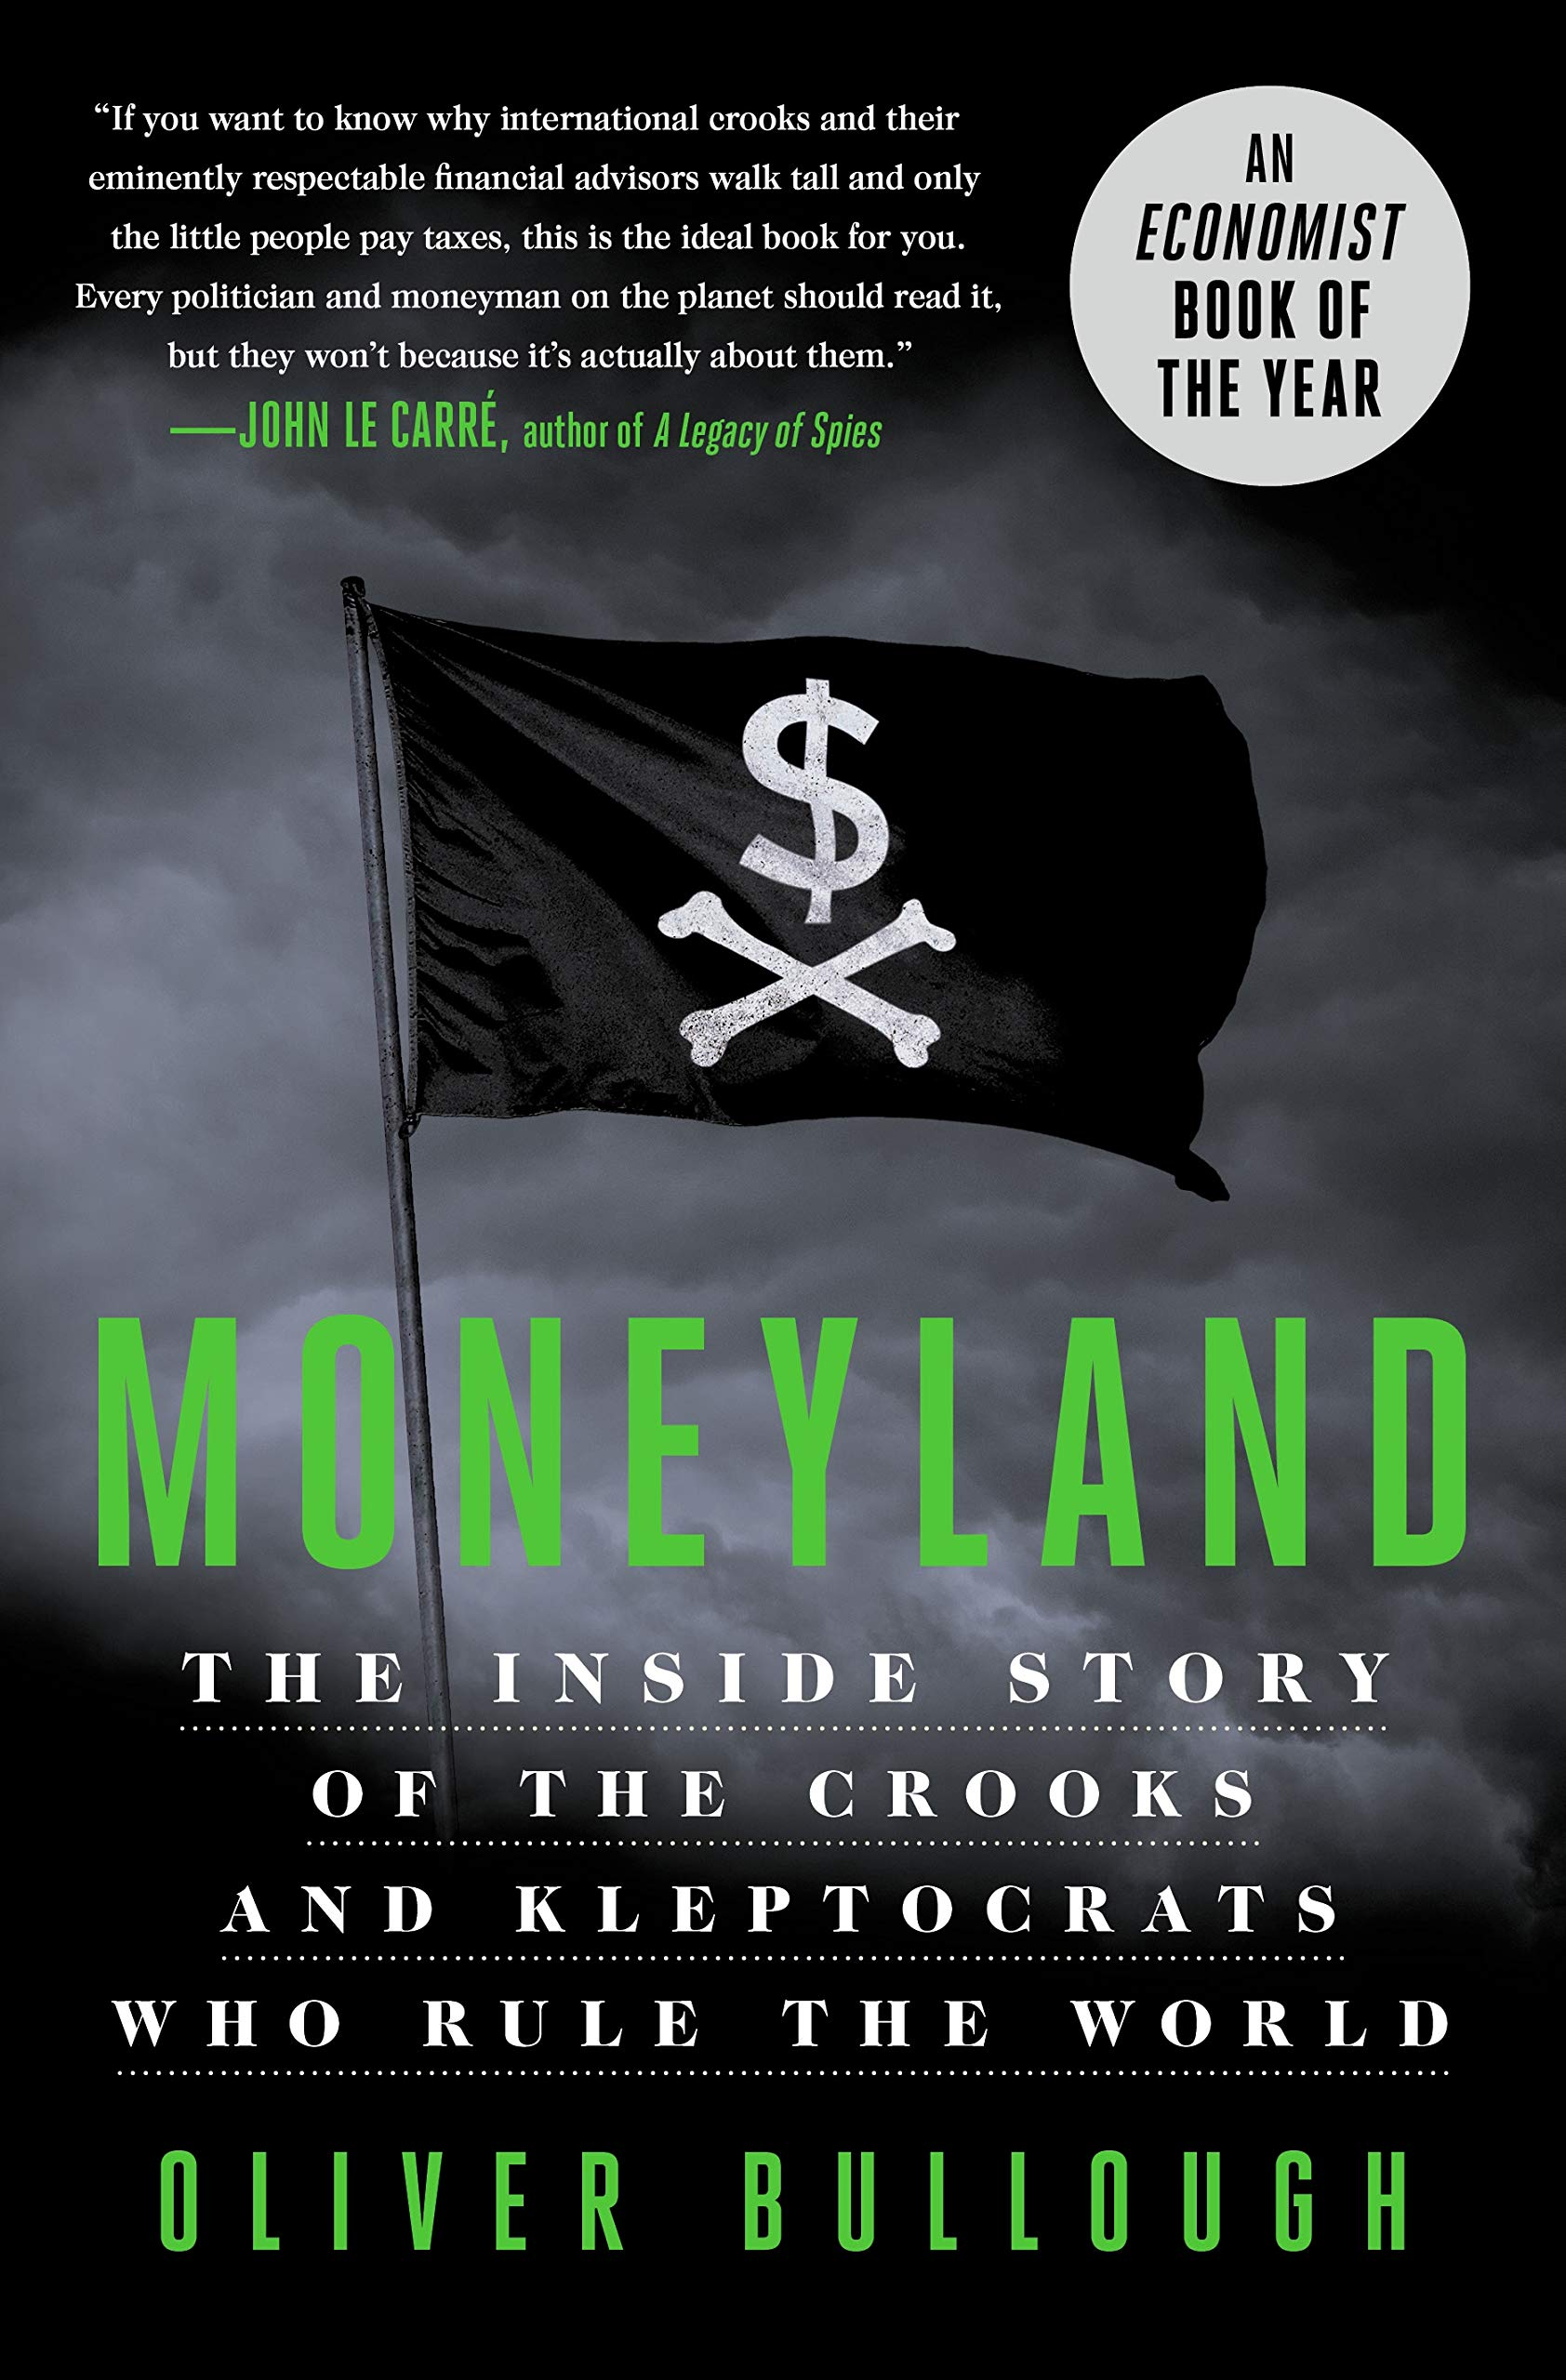 Moneyland by Oliver Bullough St. Martin's Press, 2019